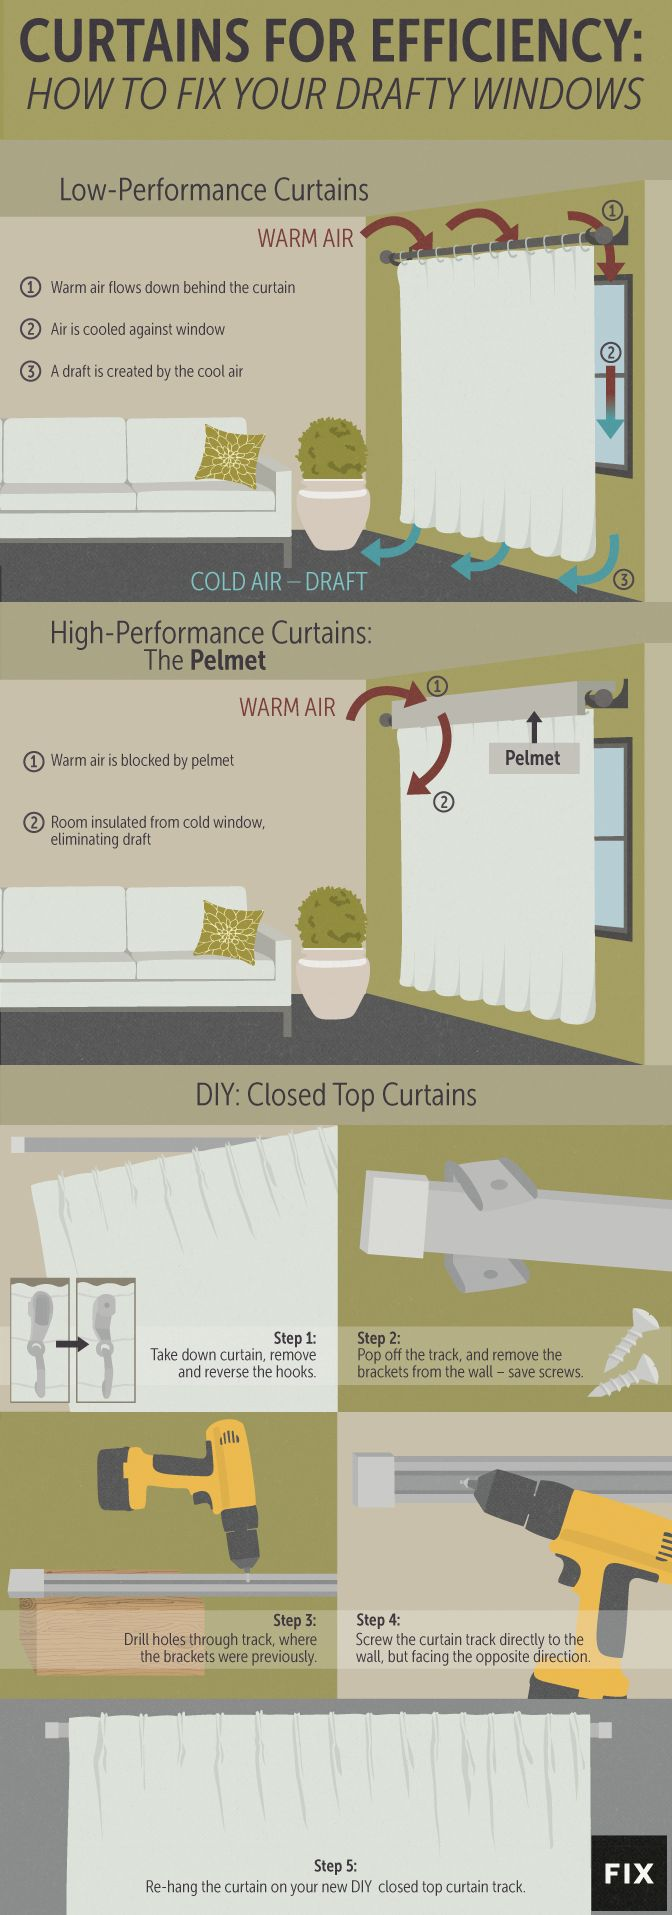 Heres How To Make Sure Your Drafty Home Is Never Cold Again -- Temporary pelmet from foamboard? cardboard or luan with batting wrapped in complementary fabric?